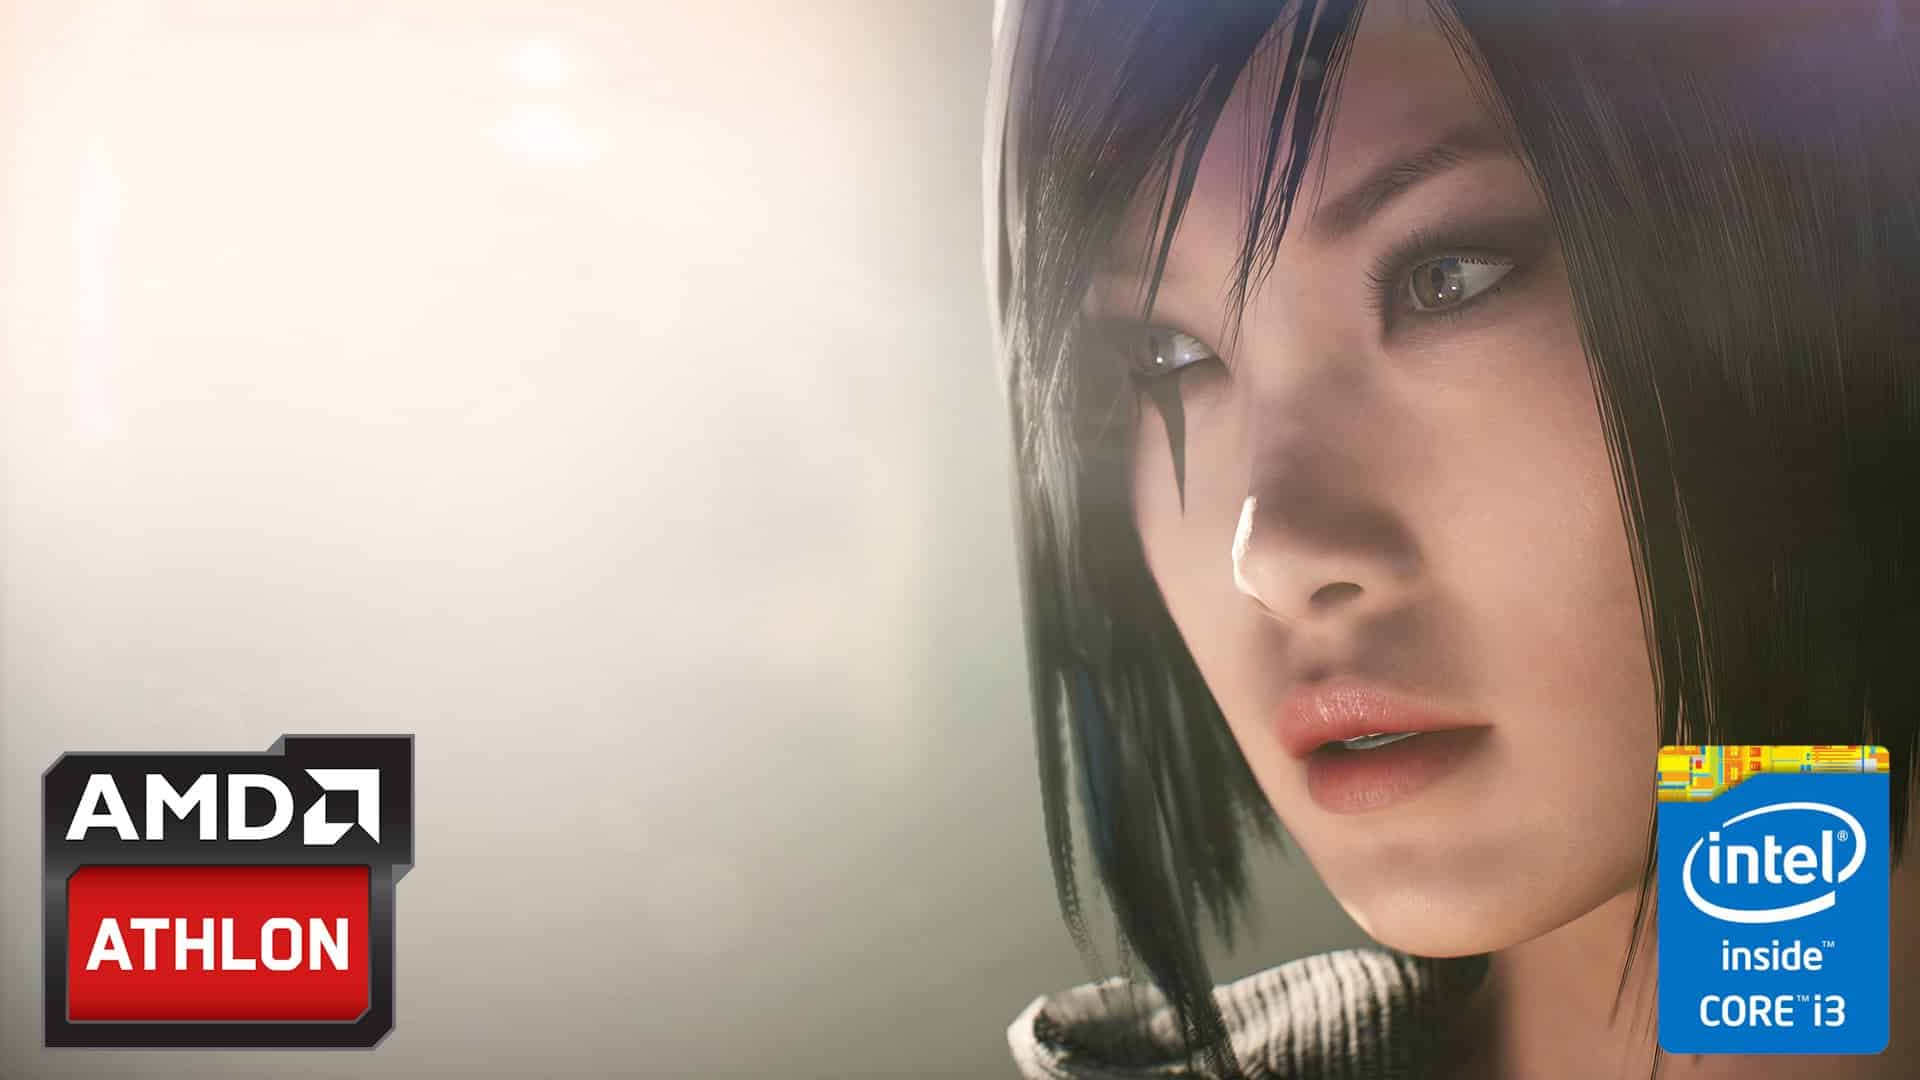 AMD vs Intel - PC Gaming Entry Level - Mirror's Edge Catalyst